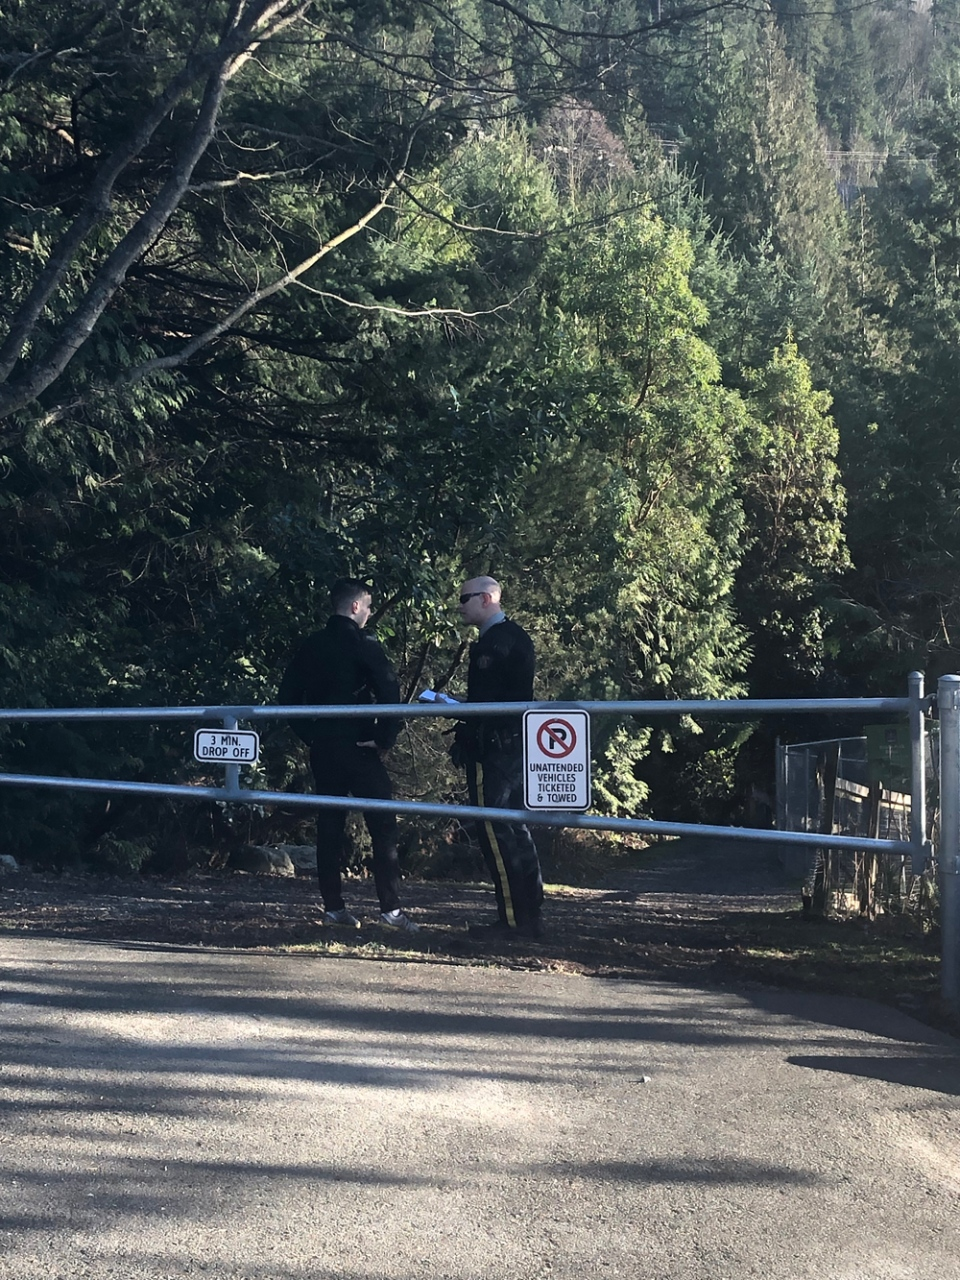 A trail where a body was recovered is seen near the Village of Lions Bay on Monday, Jan. 14, 2019. (Emad Agahi / CTV Vancouver)